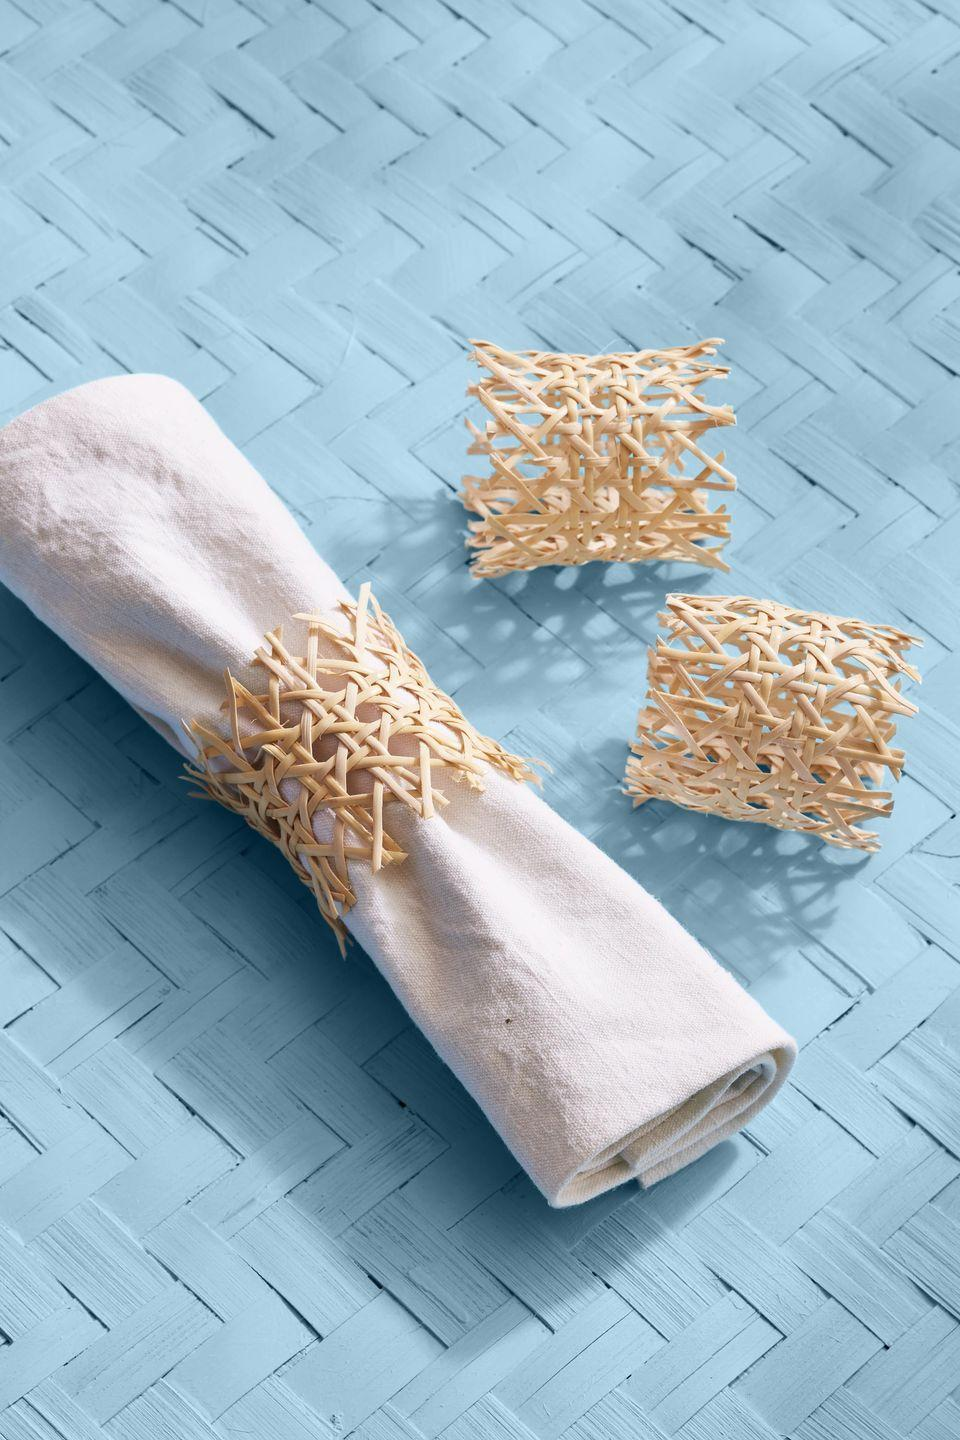 <p>Dress up your table with these oh-so simple to make napkin rings.<br><strong><br>To make: </strong>Cut out a piece of caning that is 8 inches long by 2 1/2 inches tall. Use hot-glue to adhere the ends together, creating a ring. If desired, remove some of the cross canes to create a loose edge.</p>